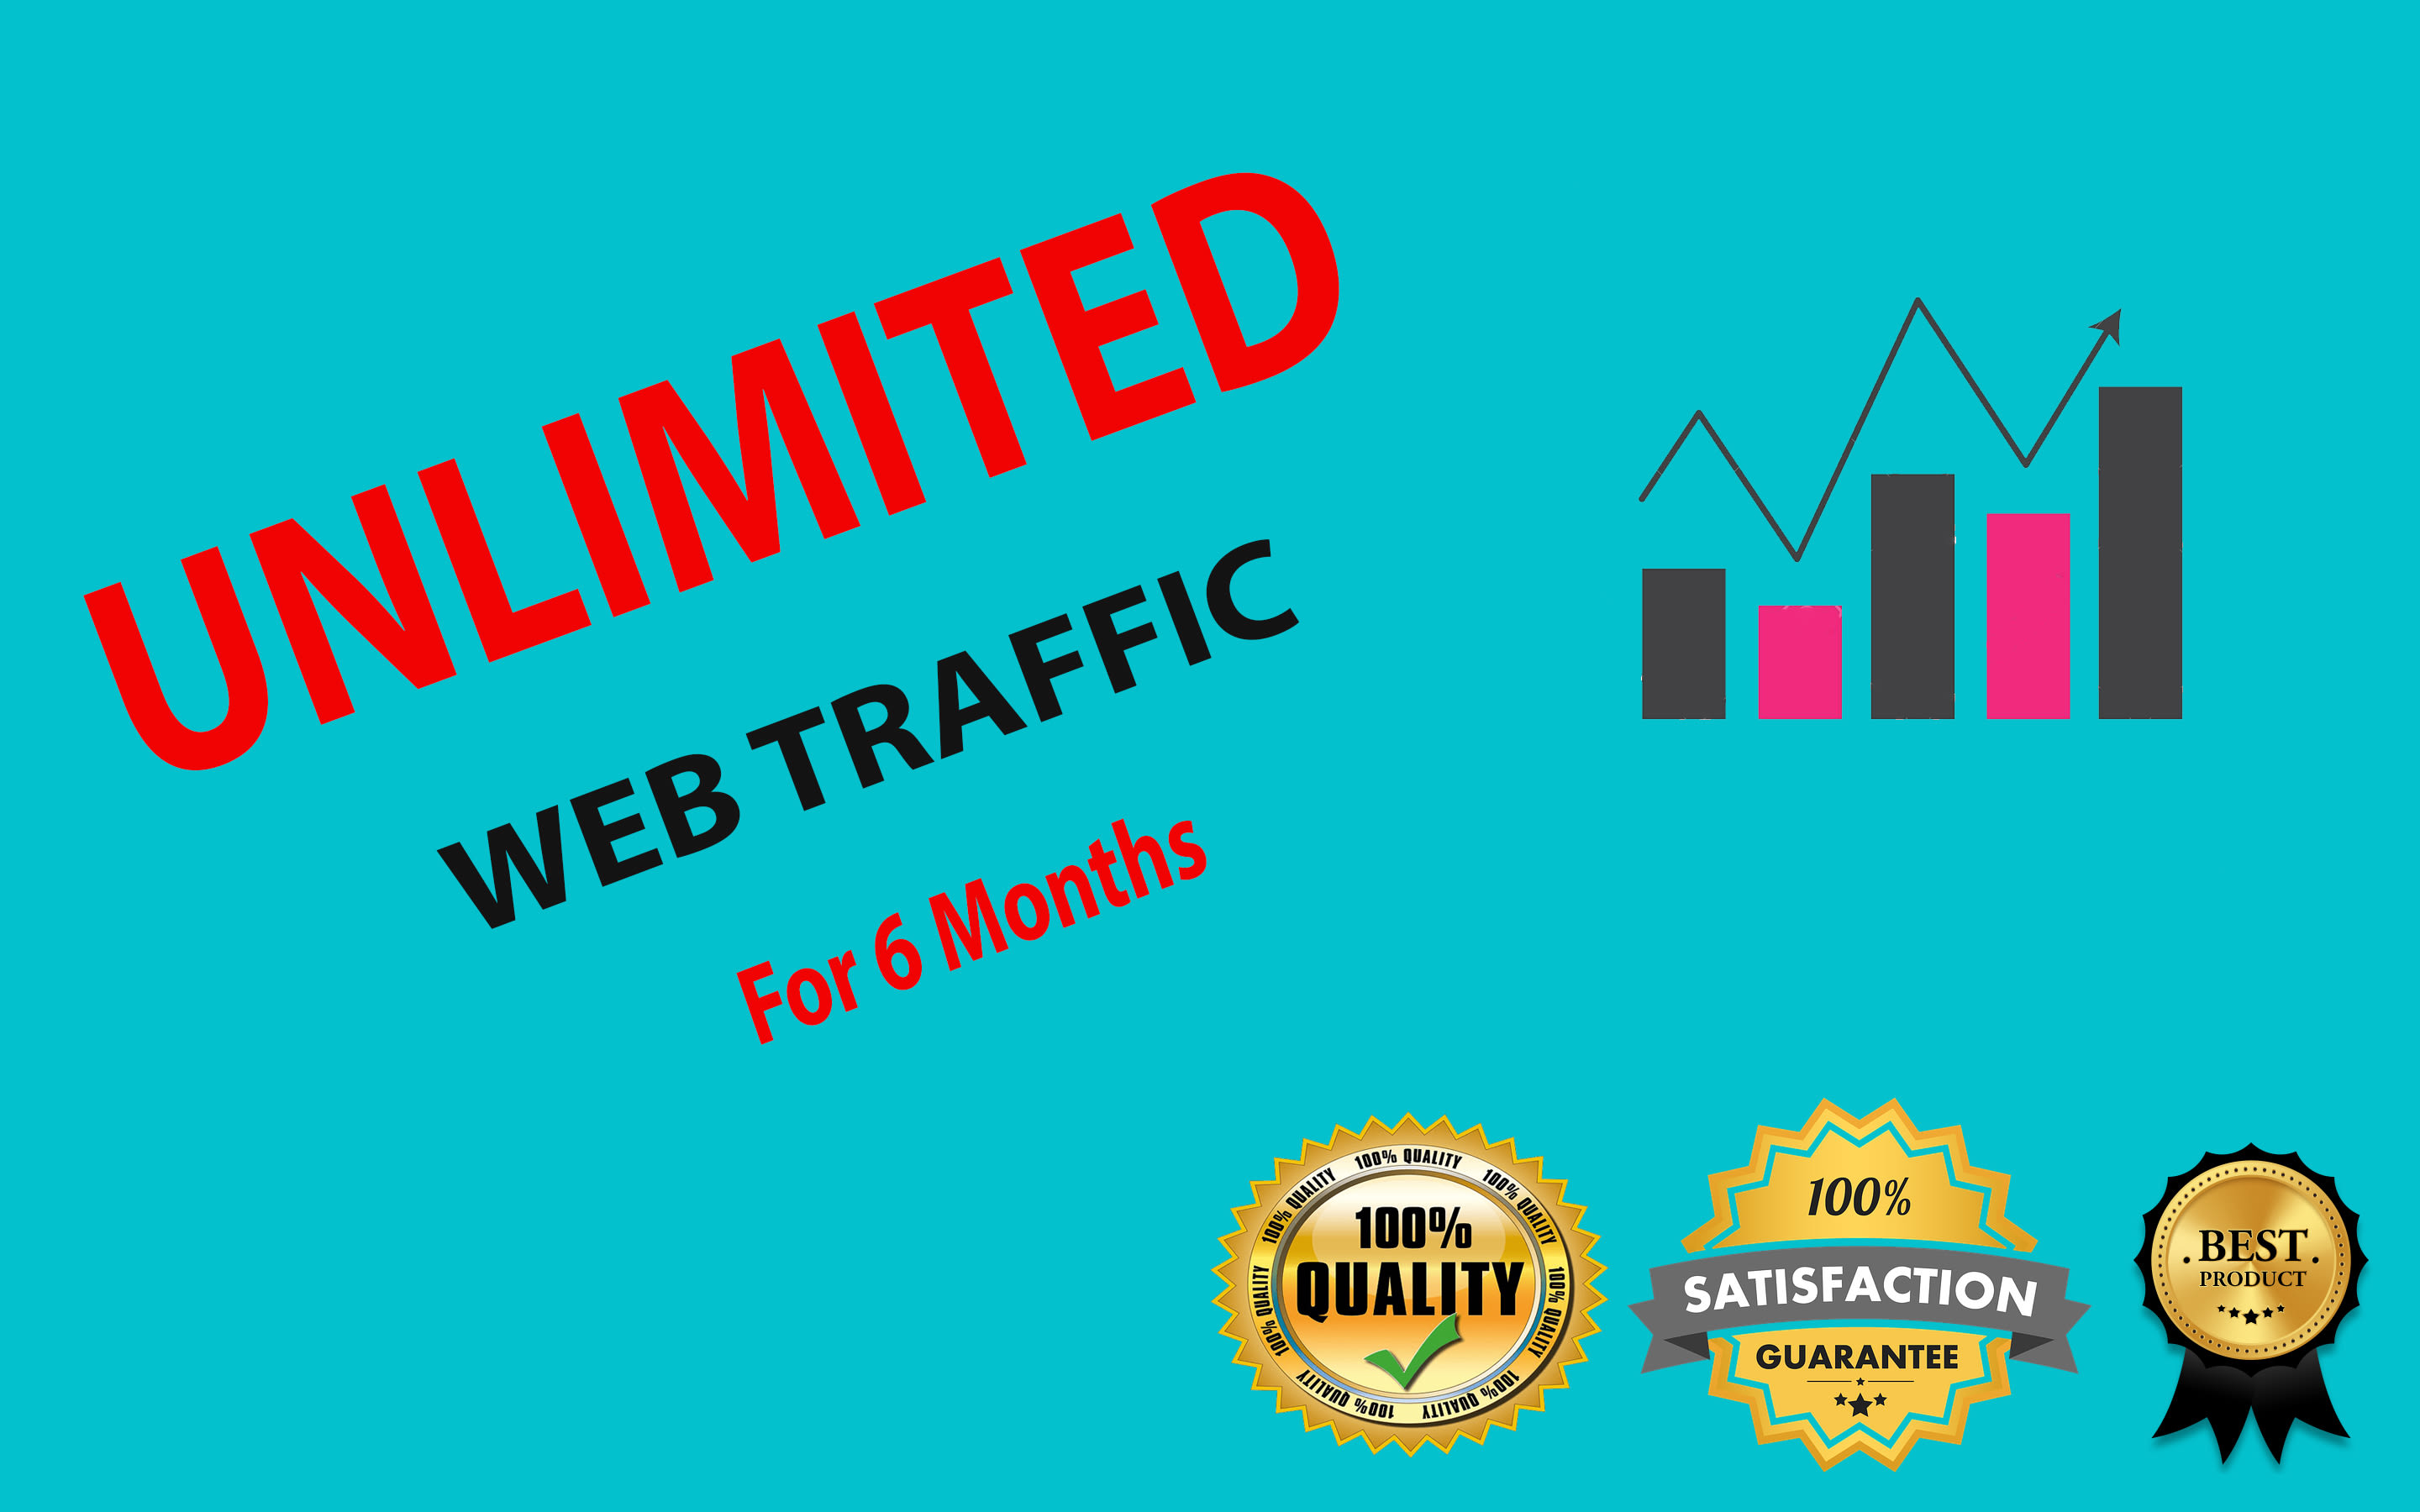 UNLIMITED WEB TRAFFIC FOR 6 MONTHS By Expertly